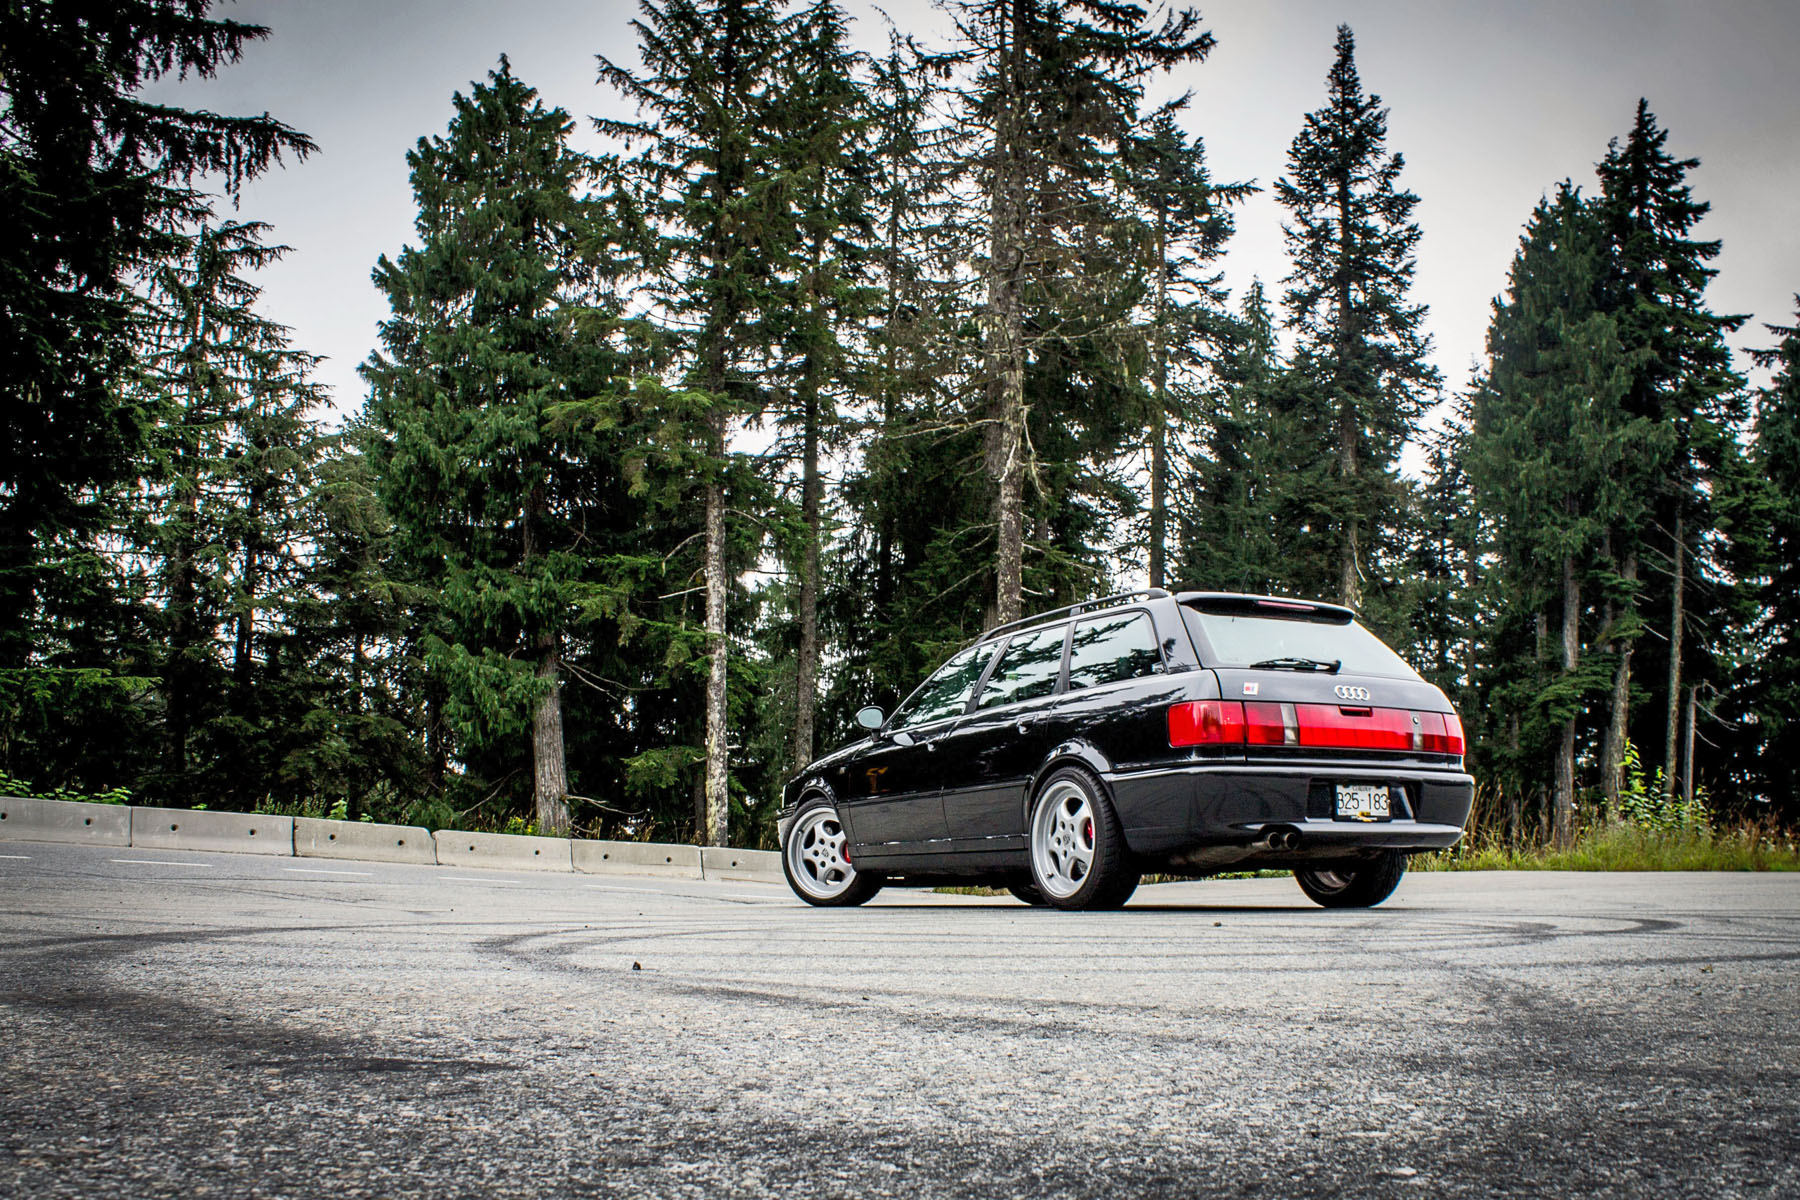 Not just a hot wagon, but an icon, the Audi RS2 is a first-of-breed car that kicked off Audi's RS brand in a big way. Oh, and there's another secret too: it's actually a Porsche.